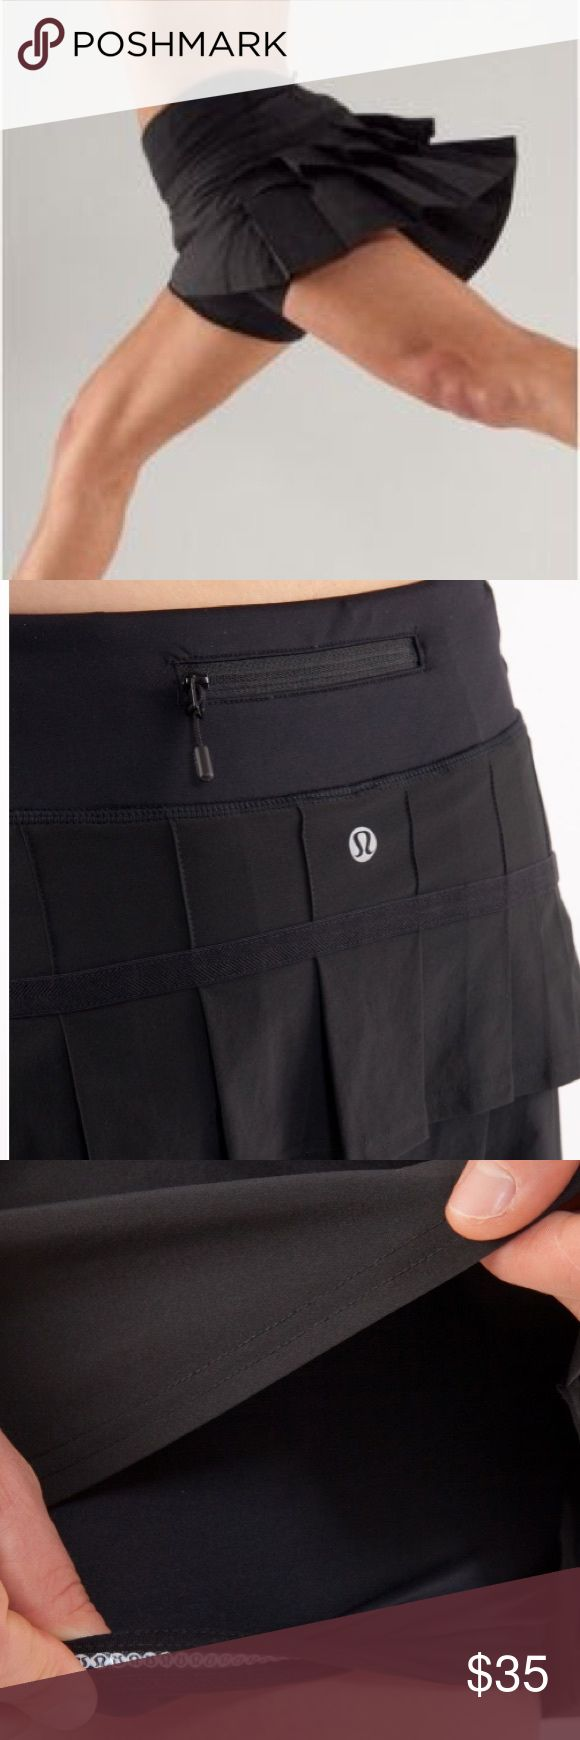 """Lululemon Run: Pace Setter Skirt - Black Size 6 Lululemon Run: Pace Setter Skirt Black  Swift fabric is lightweight, moisture-wicking w/ 4-way stretch thick Luxtreme waistband won't dig in secure zipper pocket on back waistband for cards and keys; two gel pockets for mid-race snacking built-in shorts made of moisture-wicking Luxtreme for maximum comfort sticky elastic on the hem limits stops your shorts from rolling up mid-run just say no to chafing with flat seams front length: 12 1/4"""" back…"""